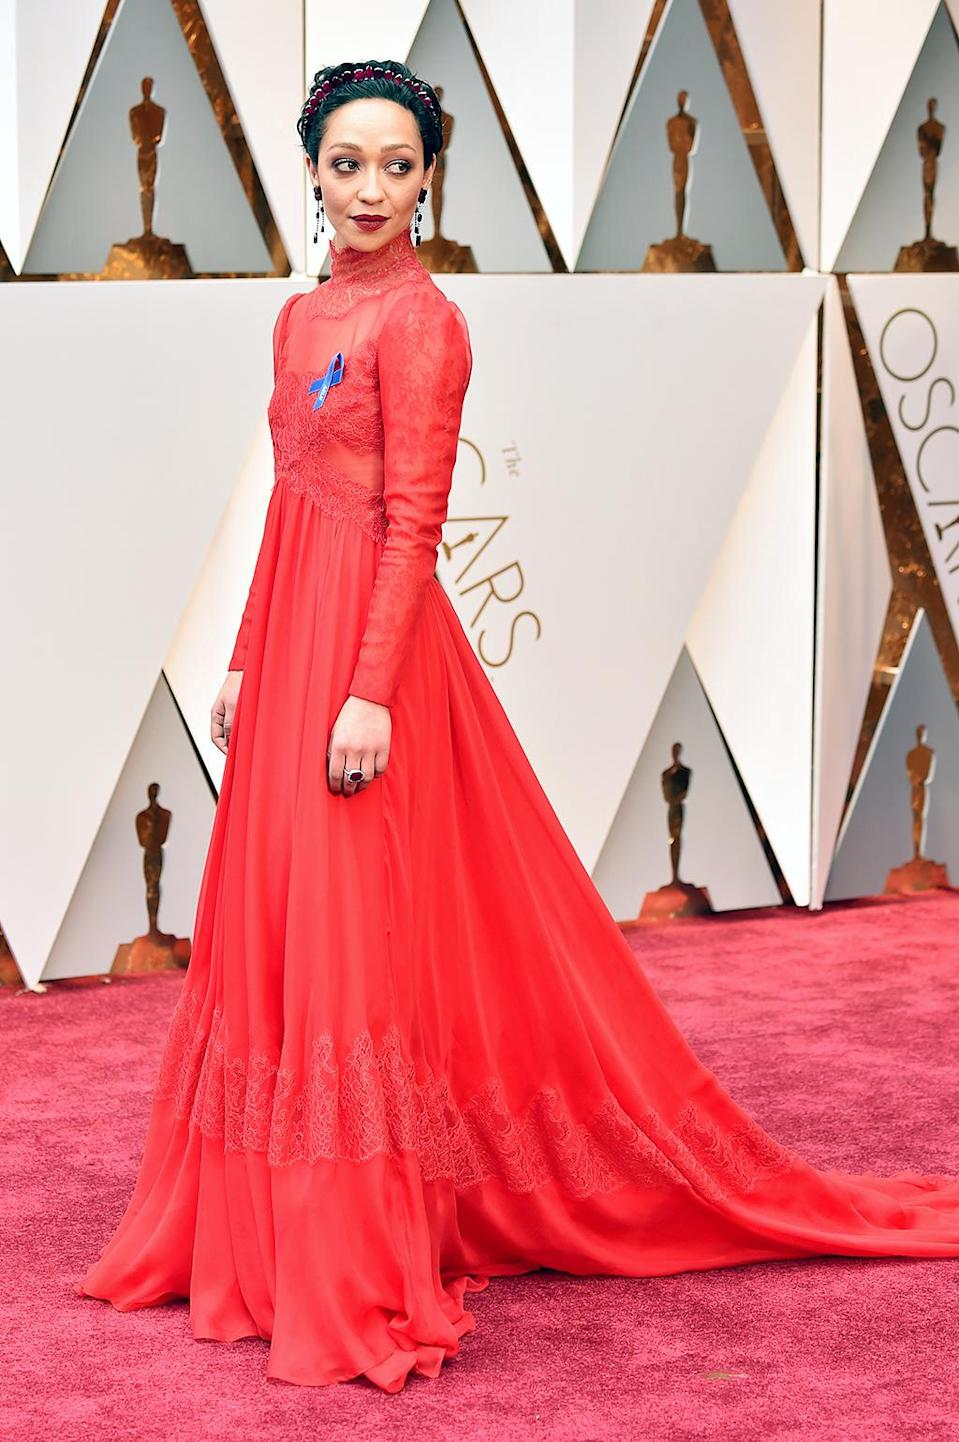 """<p>Call her the Lady in Red Valentino. The <em>Loving</em> star and Best Actress nominee dazzled on the carpet, accessorizing her scarlet gown with a blue ACLU ribbon.<br> (Photo by Frazer Harrison/Getty Images)<br><br><a href=""""https://www.yahoo.com/style/oscars-2017-vote-for-the-best-and-worst-dressed-225105125.html"""" data-ylk=""""slk:Go here to vote for best and worst dressed.;outcm:mb_qualified_link;_E:mb_qualified_link;ct:story;"""" class=""""link rapid-noclick-resp yahoo-link"""">Go here to vote for best and worst dressed.</a> </p>"""